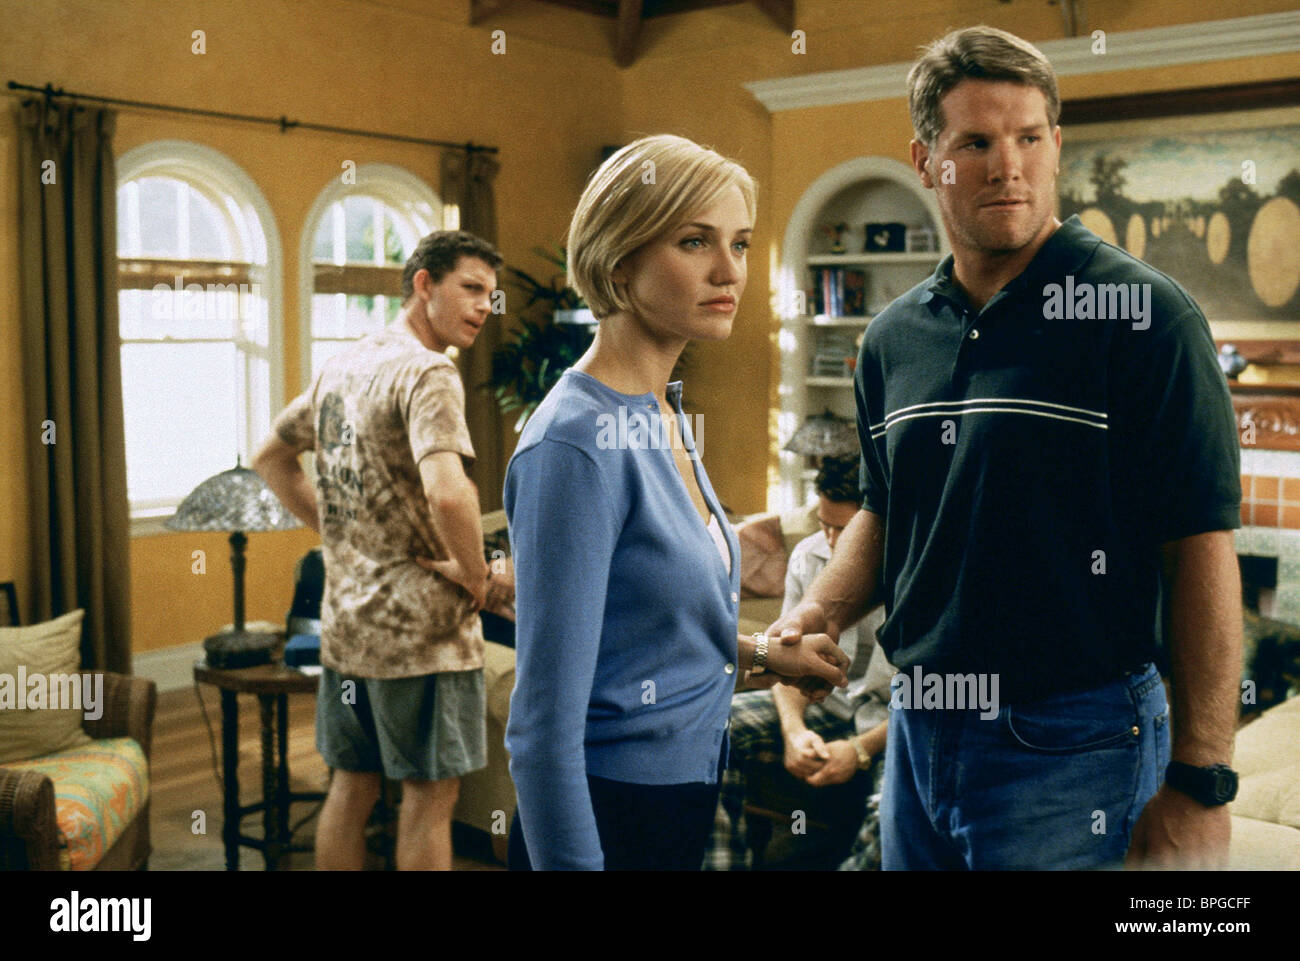 LEE EVANS, CAMERON DIAZ, BRETT FAVRE, THERE'S SOMETHING ABOUT MARY, 1998 - Stock Image